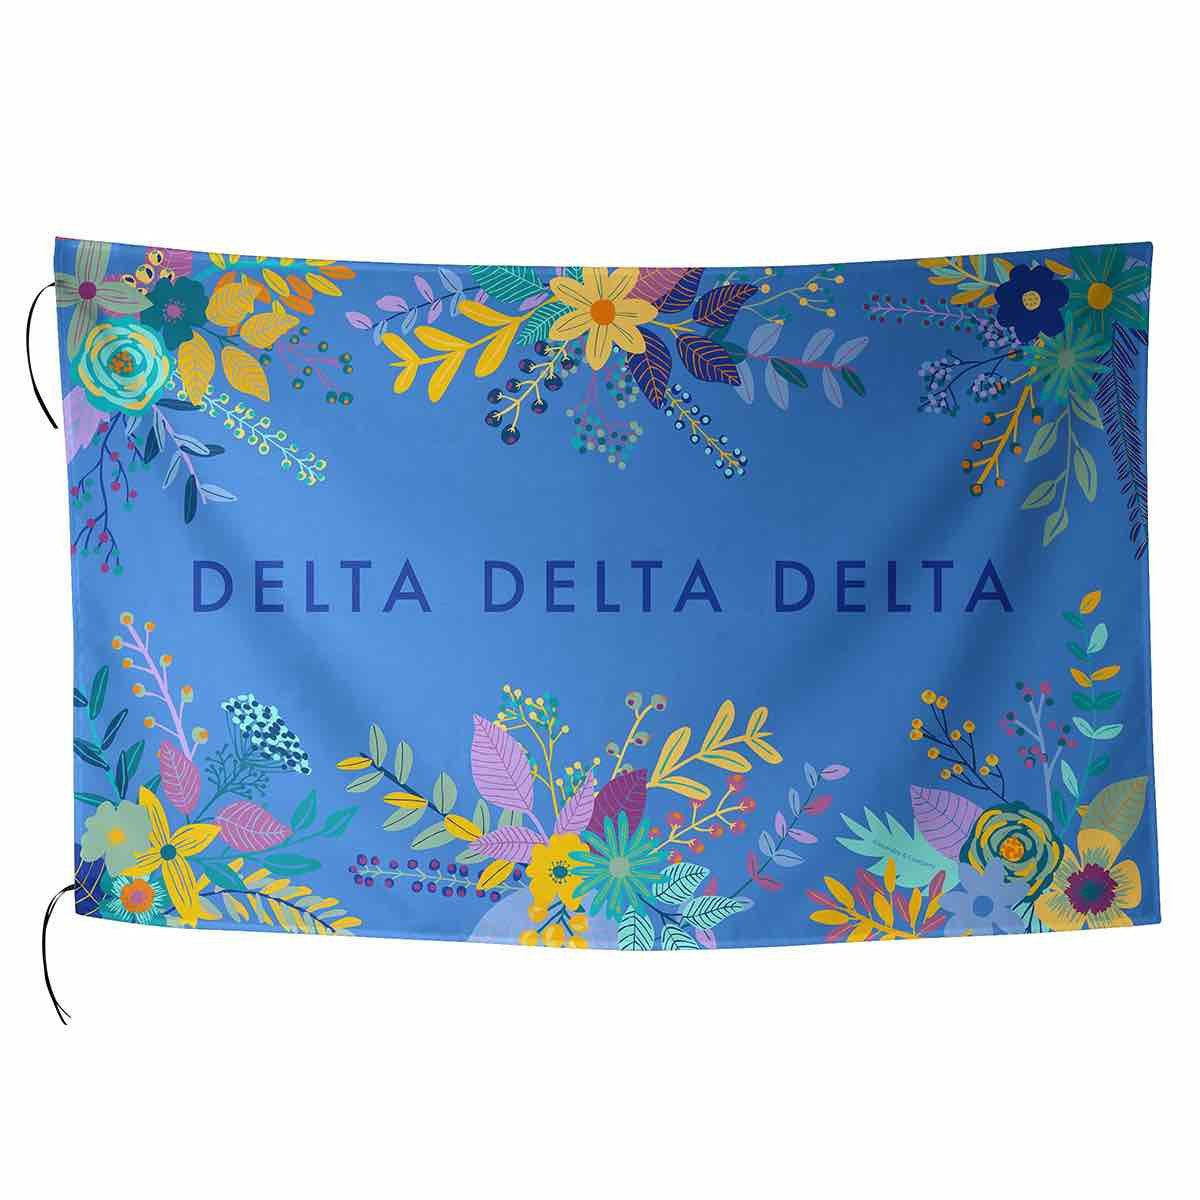 Delta Delta Delta Flag in pretty pink with tropical palm leaves and sorority name in cursive.